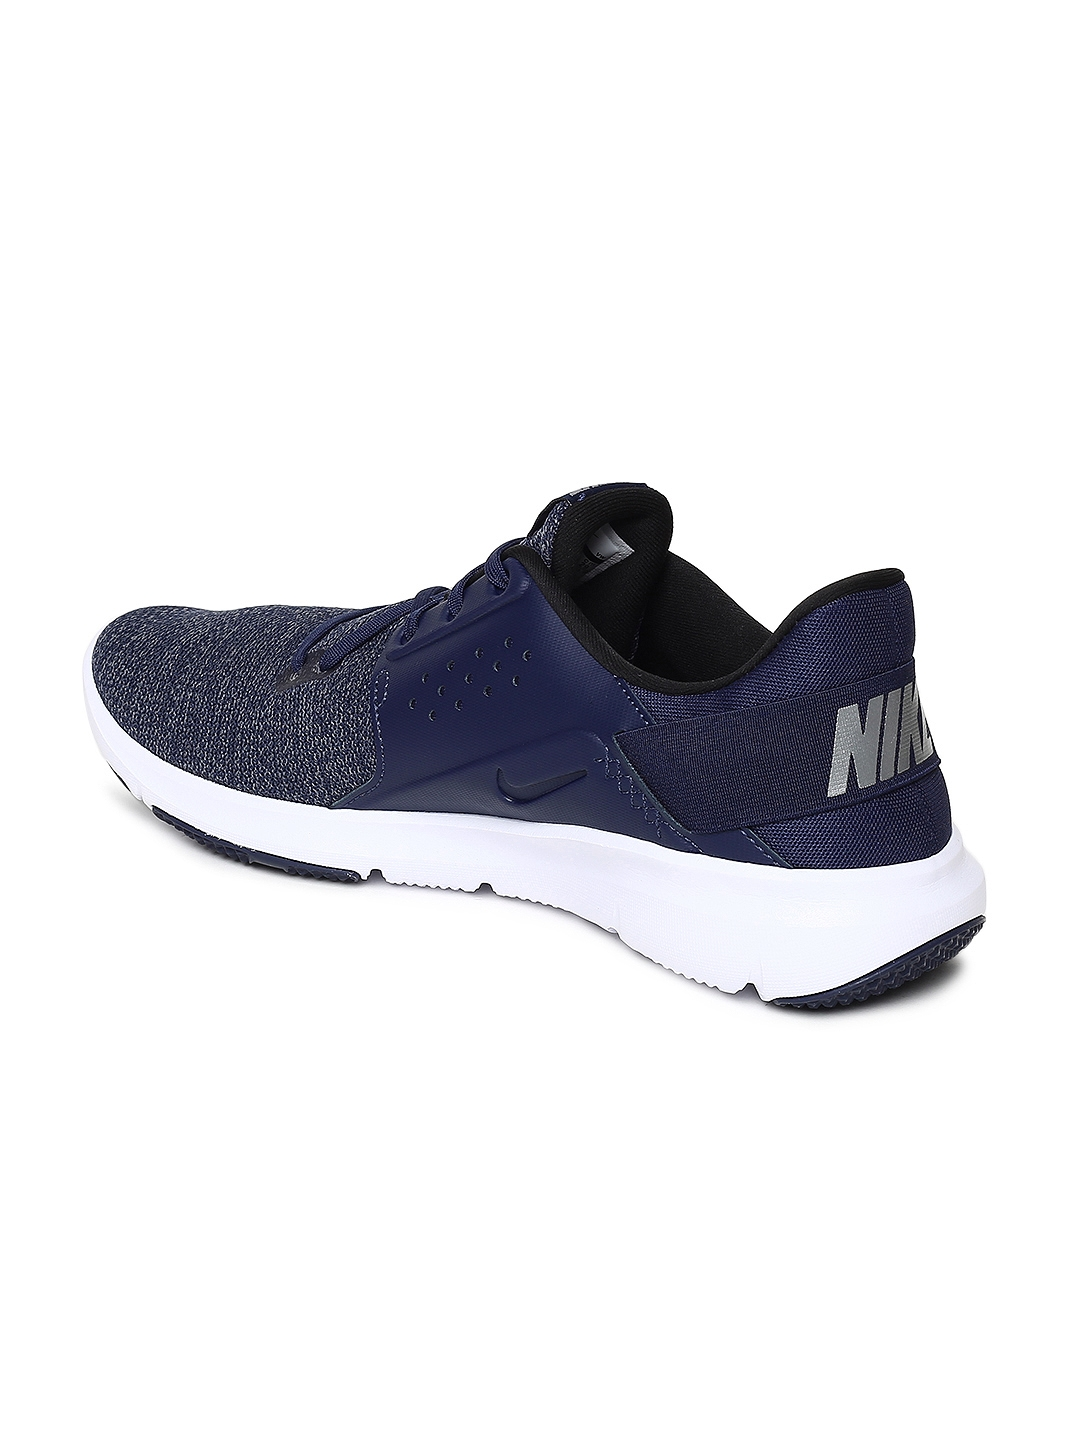 eead1248d758d Buy Nike Men Navy Blue NIKE FLEX CONTROL TR3 Training Or Gym Shoes ...